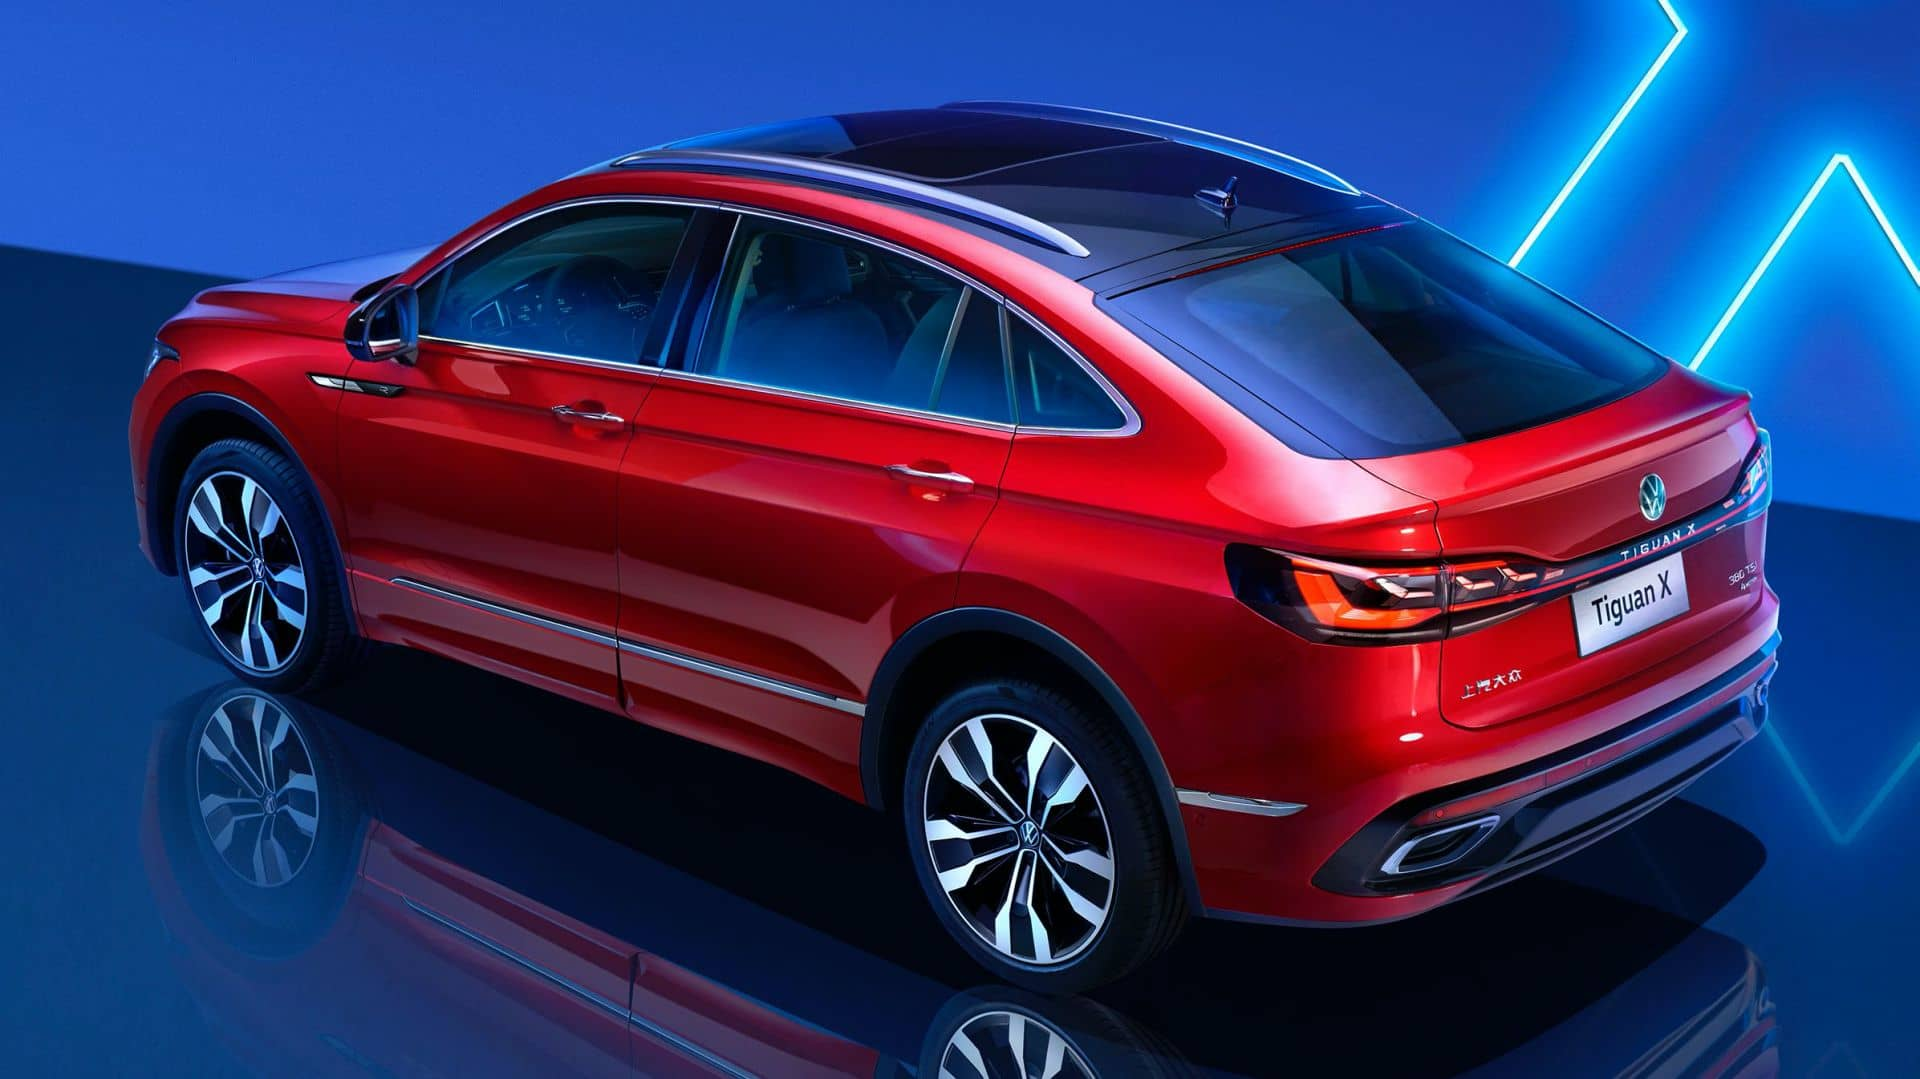 2021-Volkswagen-Tiguan-X-China-spec-6